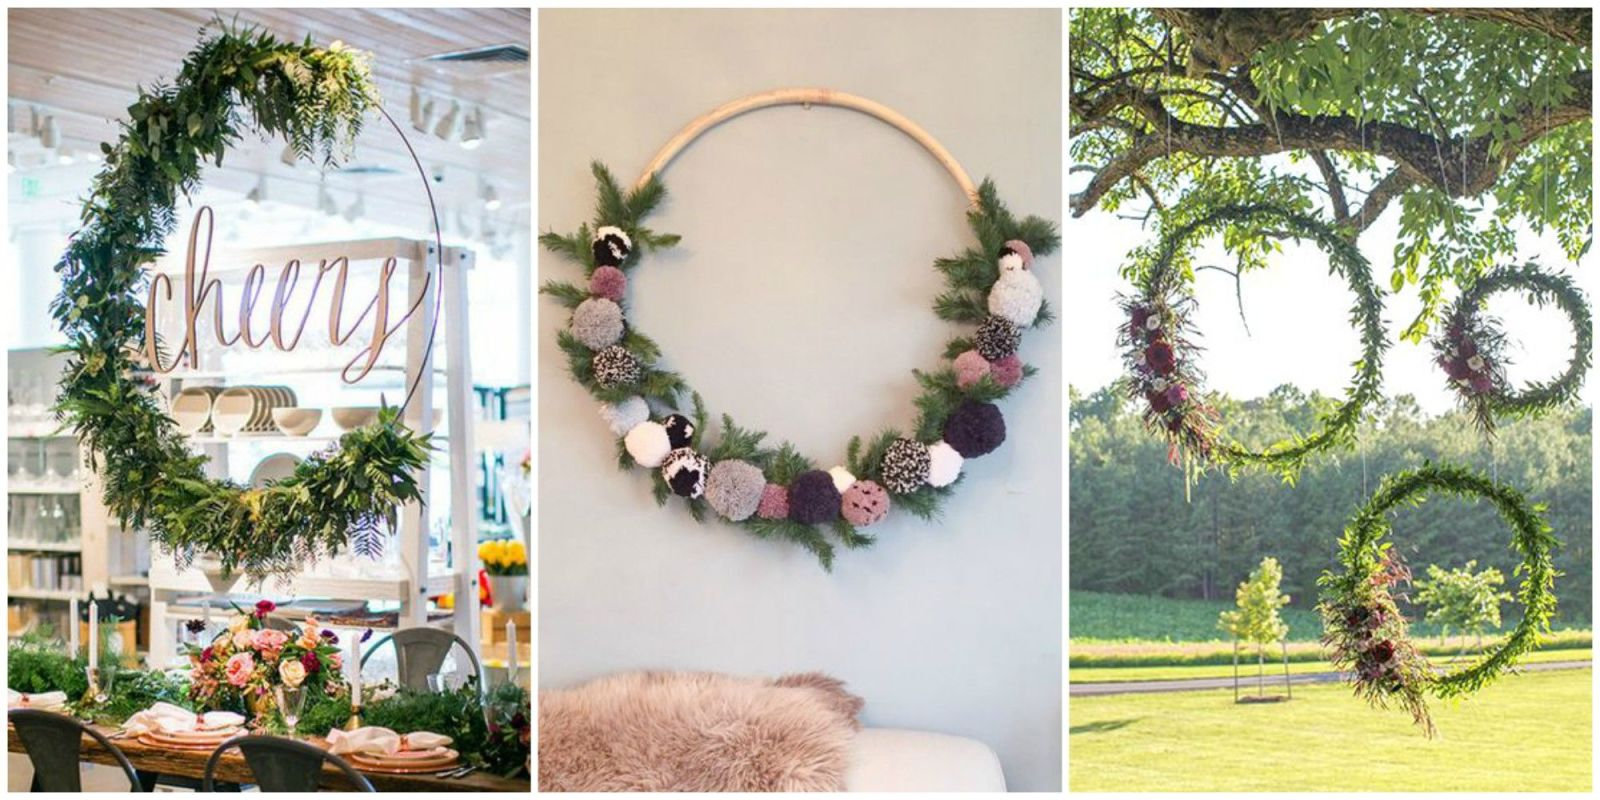 How To Make Large Hula Hoop Wreaths For Spring Diy Large